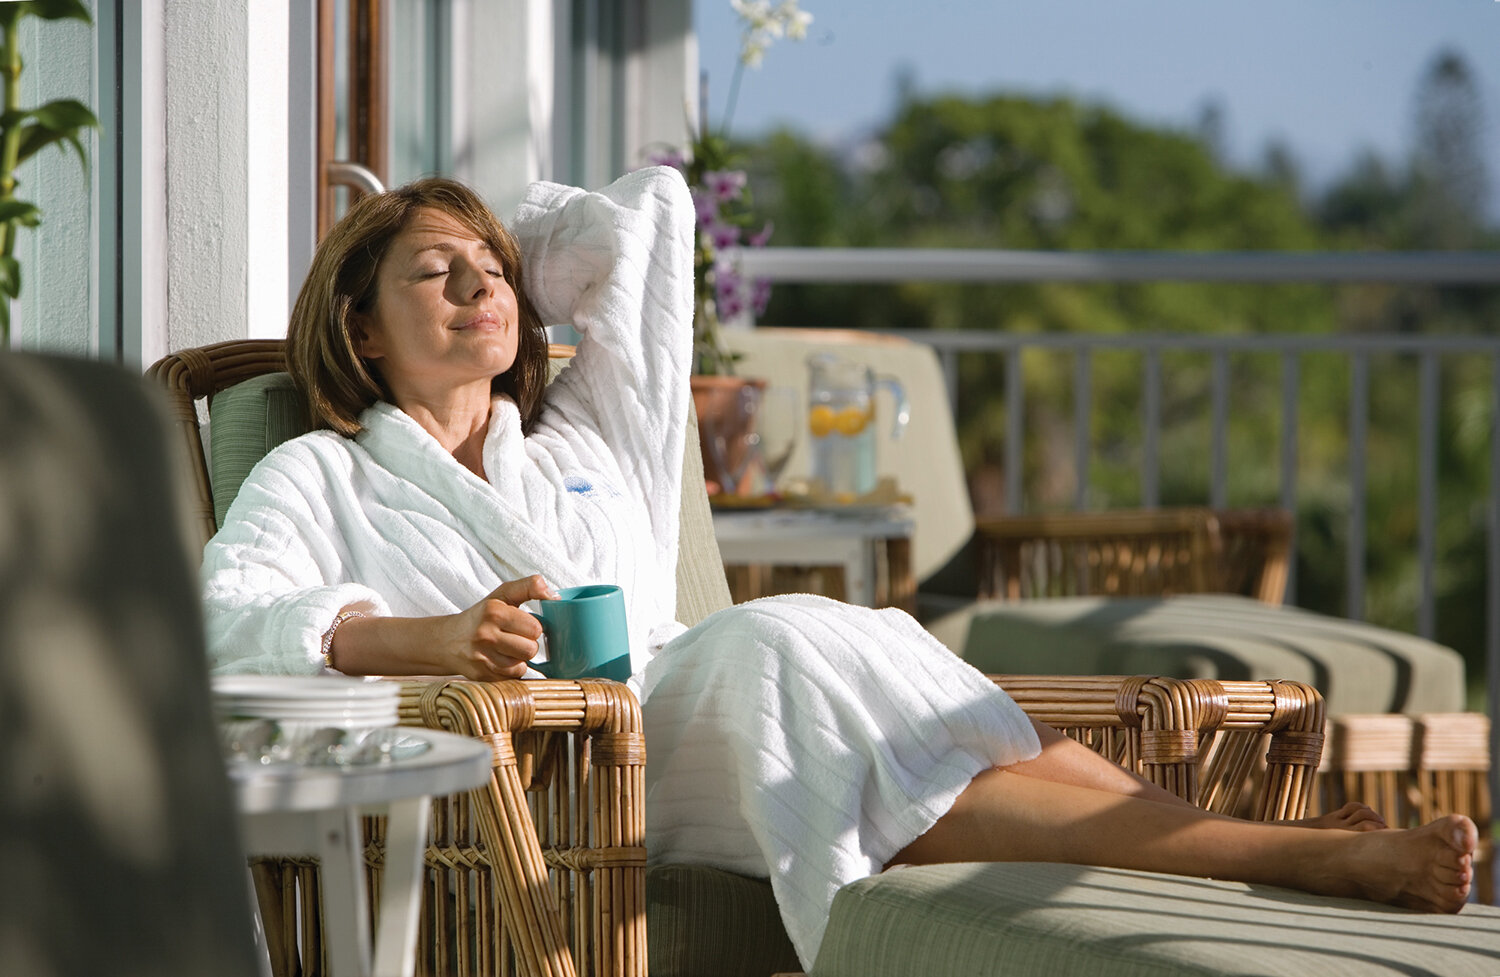 Spa Balcony woman.jpg